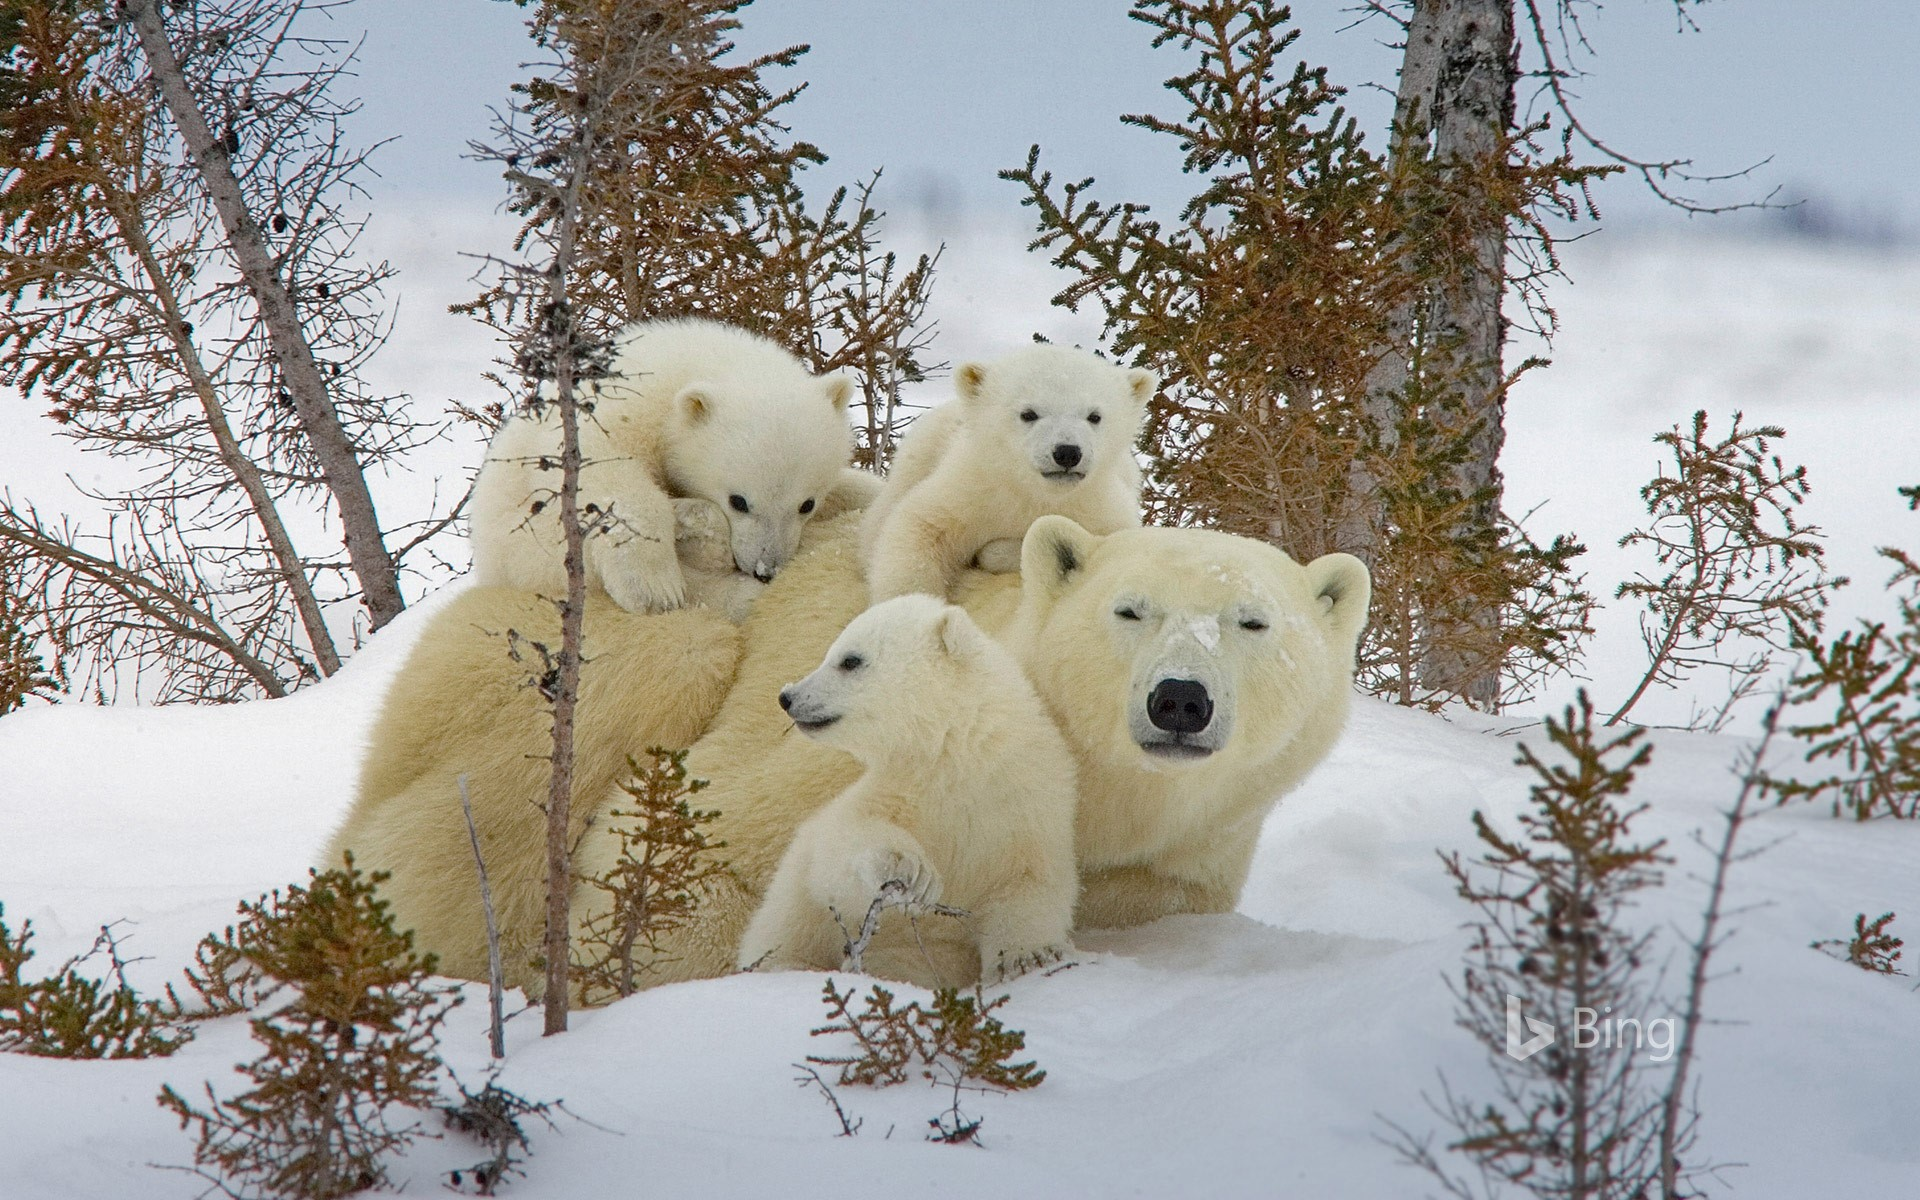 Mother polar bear and cubs in Manitoba's Wapusk National Park, Canada